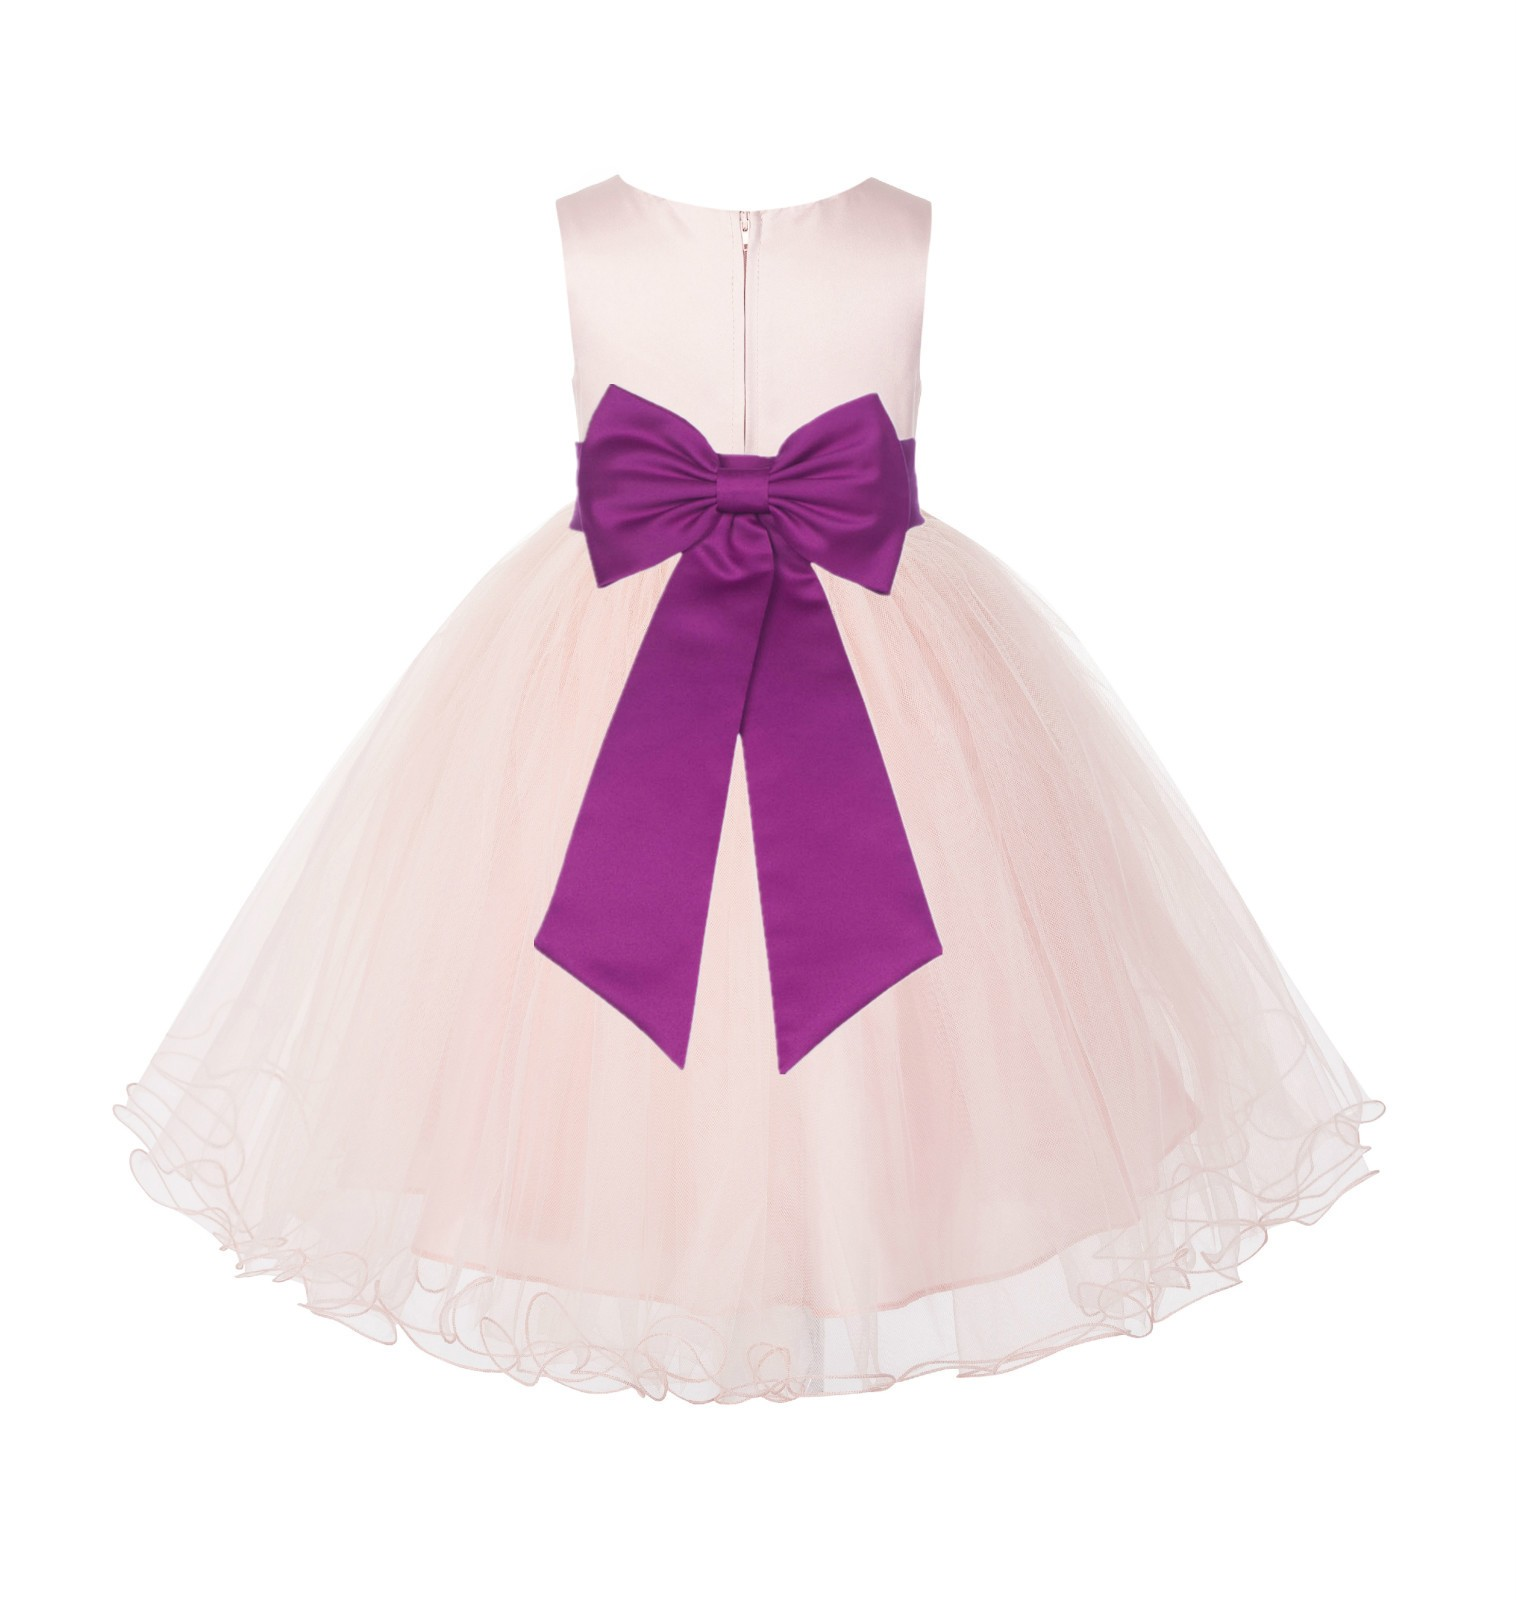 Blush PInk / Raspberry Tulle Rattail Edge Flower Girl Dress Wedding Bridesmaid 829T